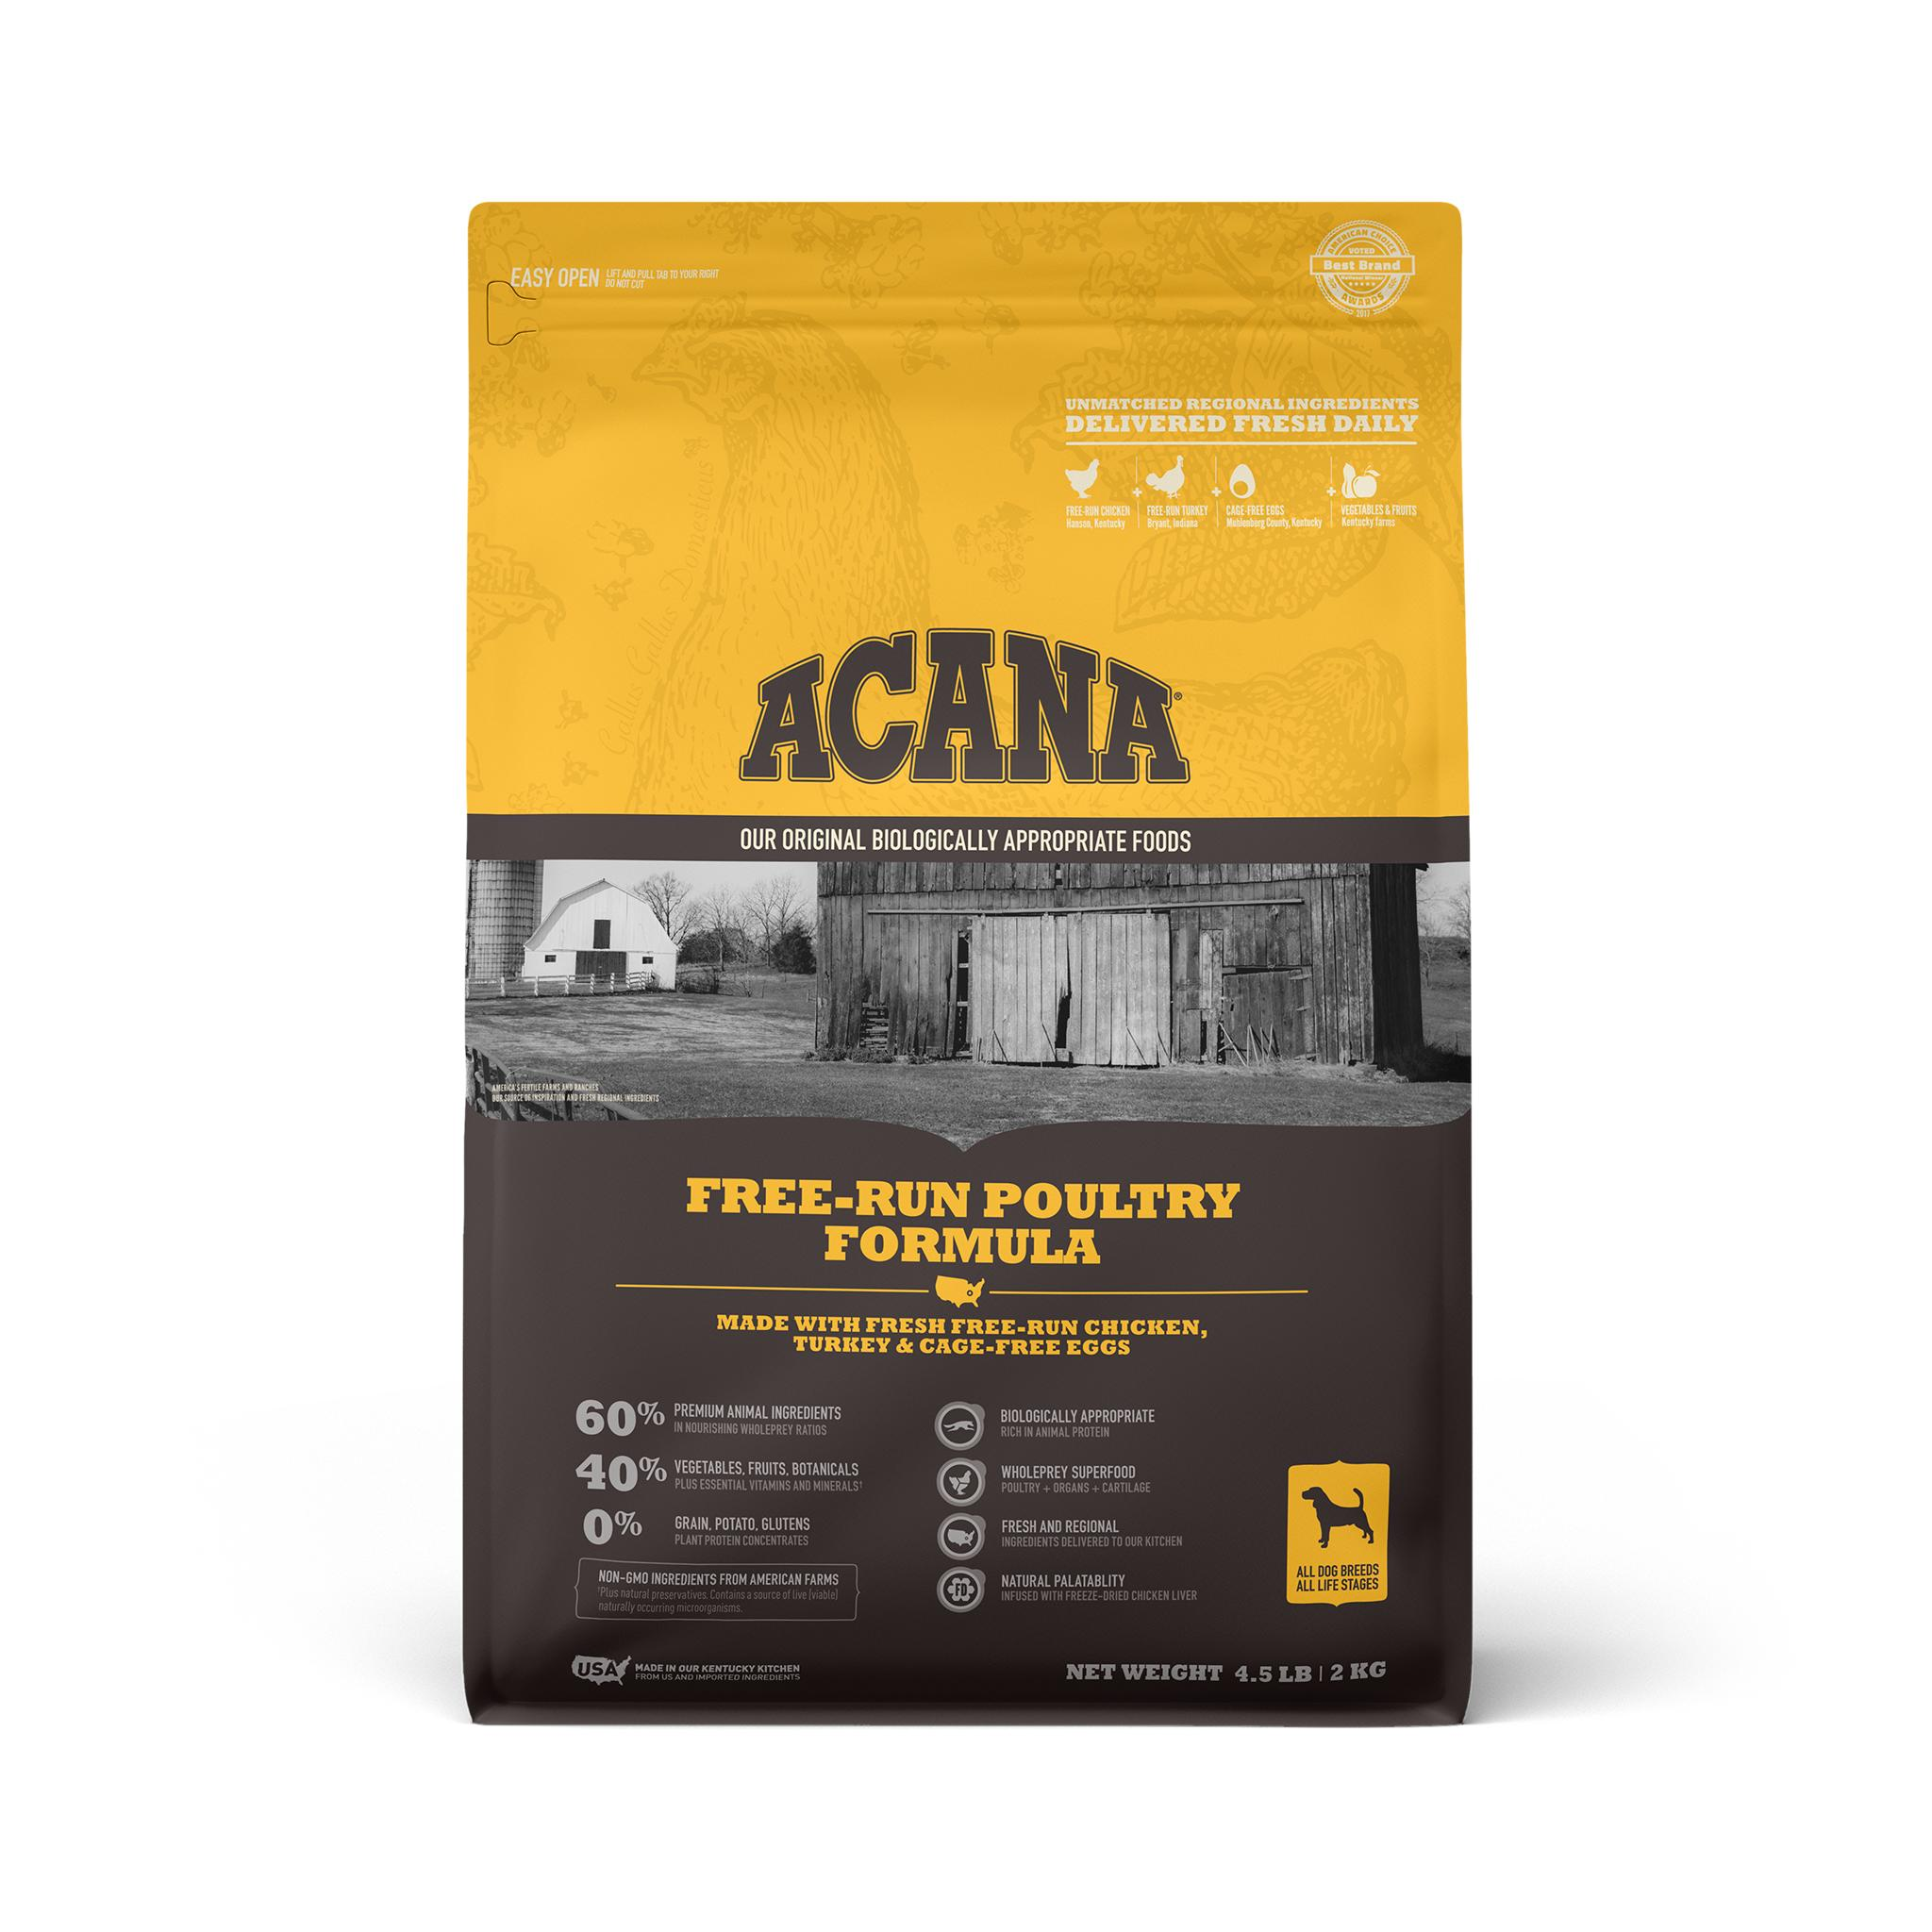 ACANA Free-Run Poultry Grain-Free Dry Dog Food, 4.5-lb